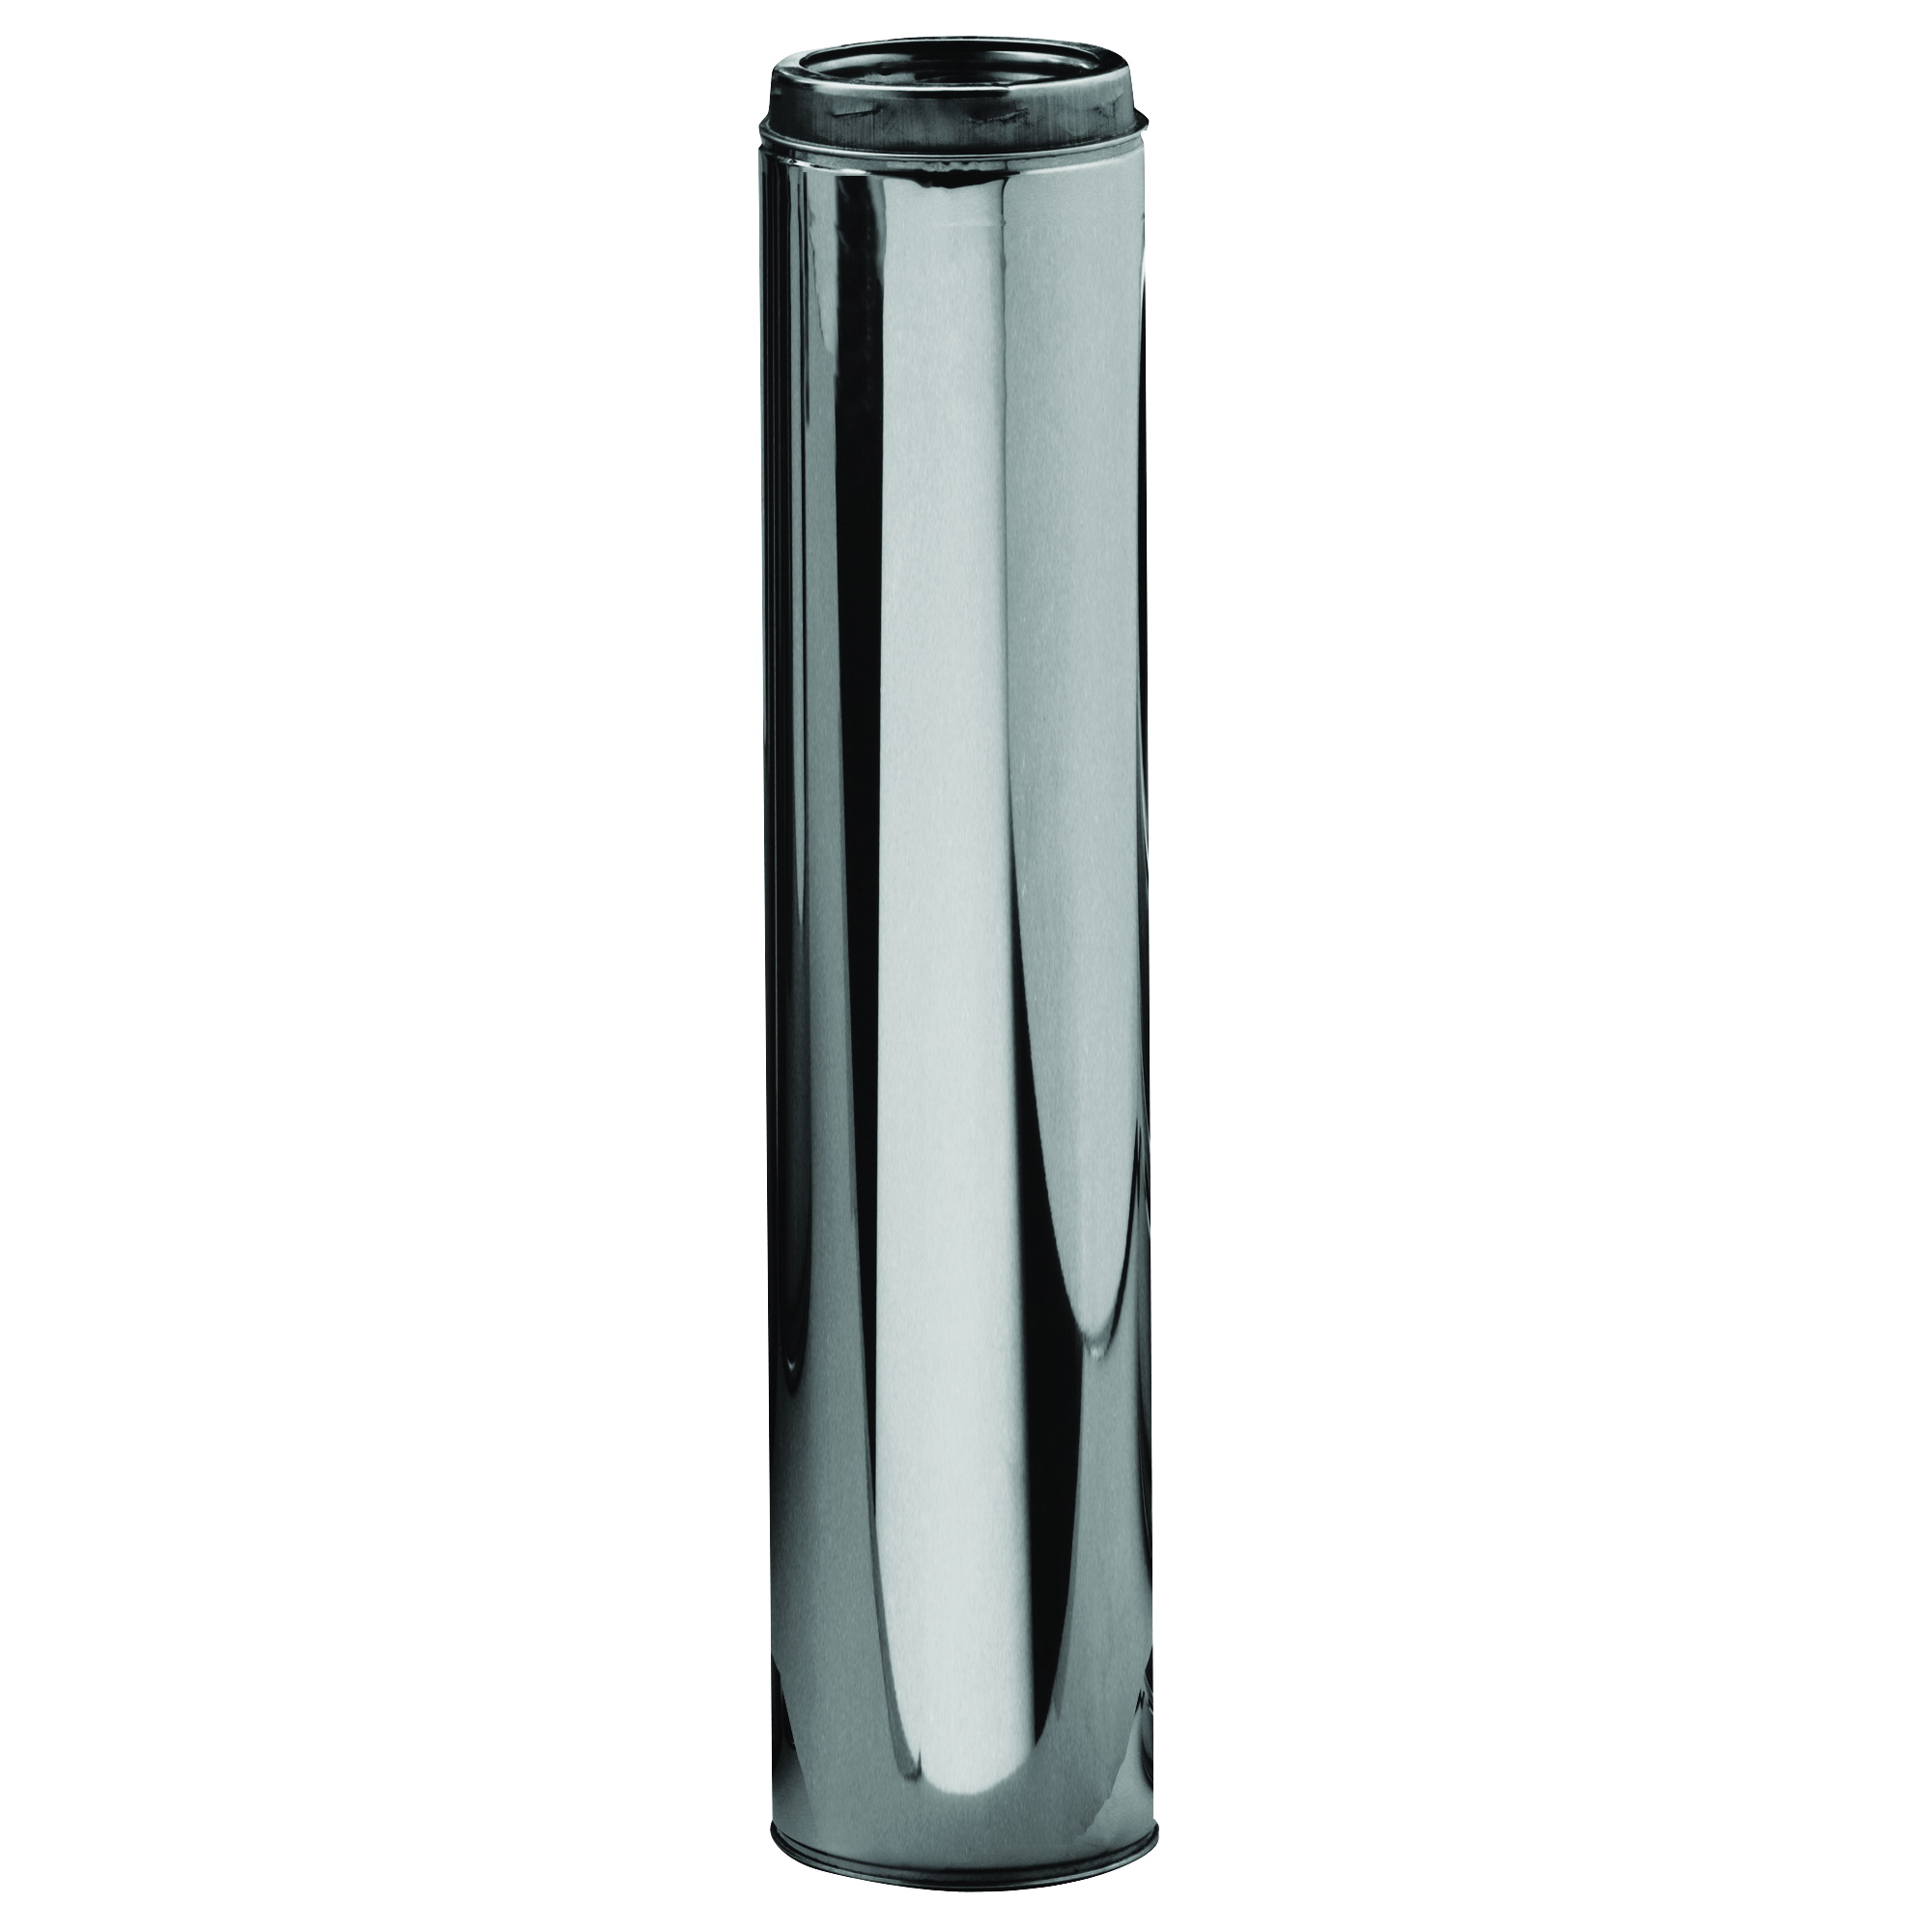 Picture of SELKIRK 206036 Chimney Pipe, 8 in OD, 36 in L, Stainless Steel